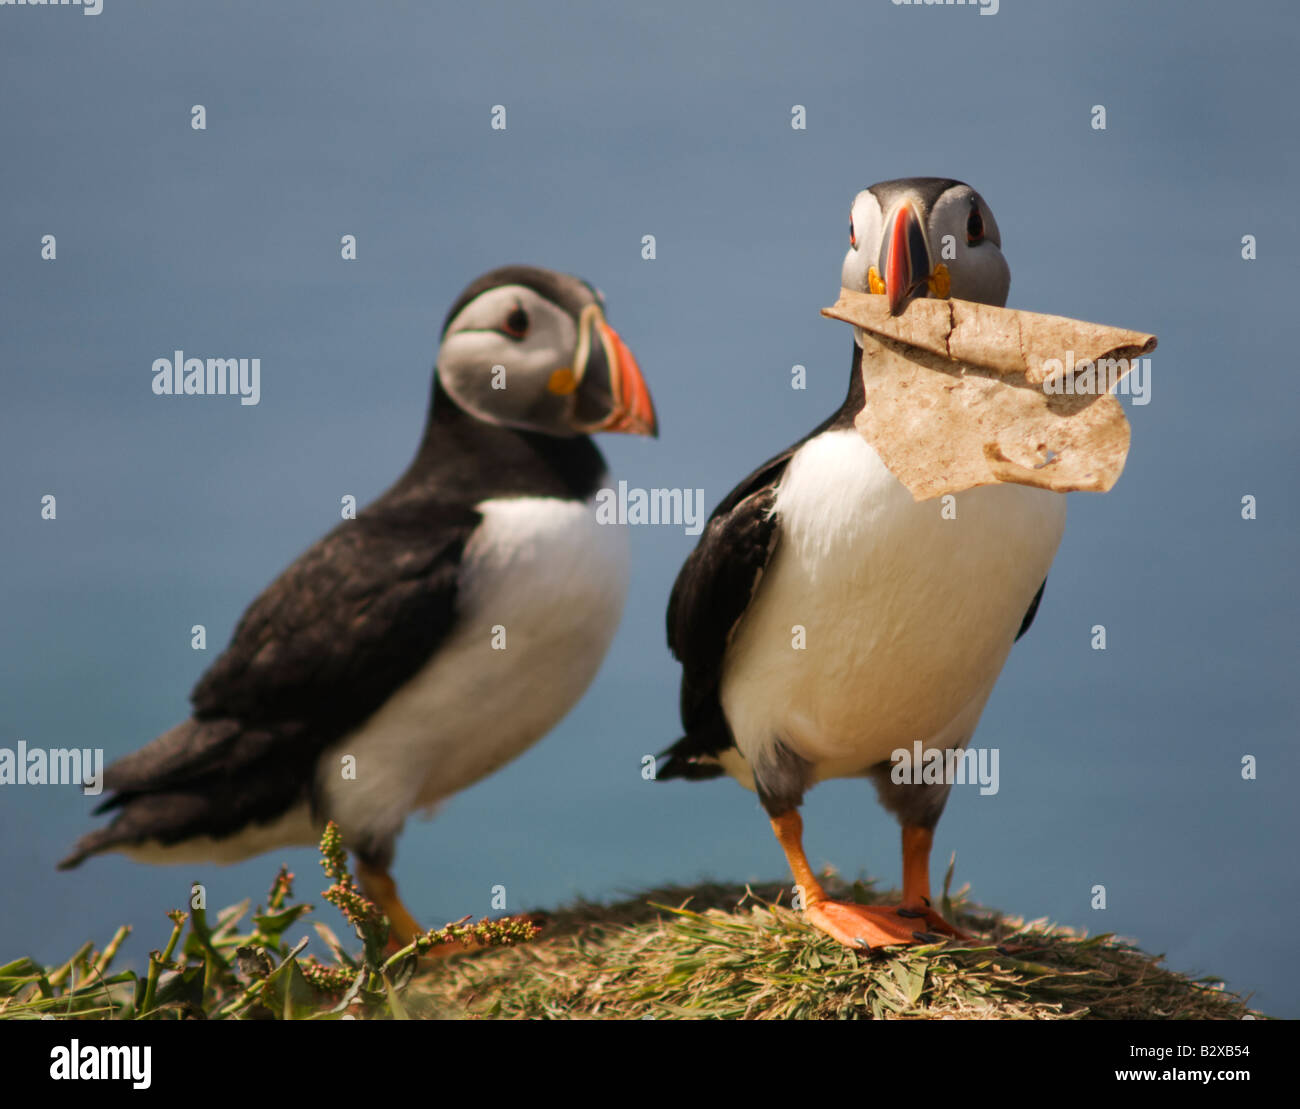 two puffins with a piece of rubbish - Stock Image